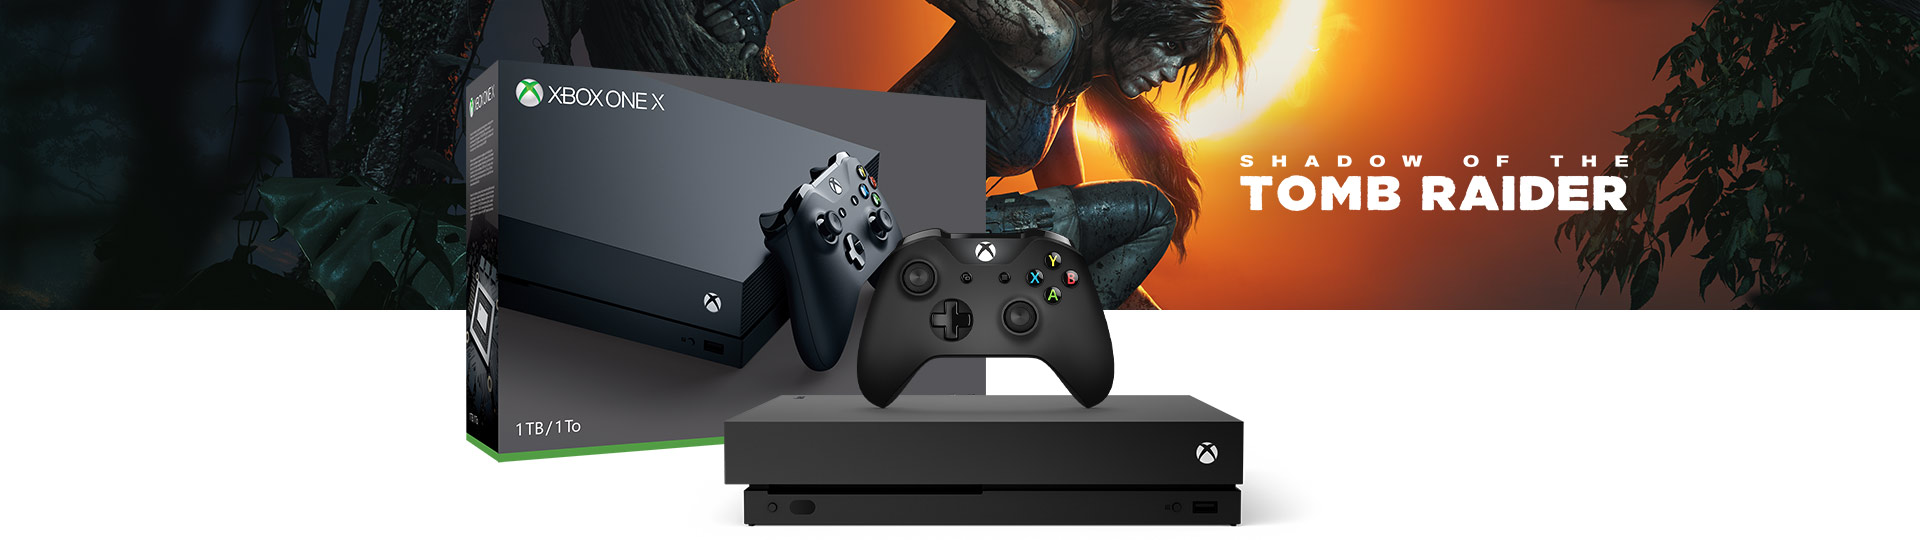 Xbox One X and Controller next to the Xbox One X Shadow of the Tomb Raider 1 terabyte product box